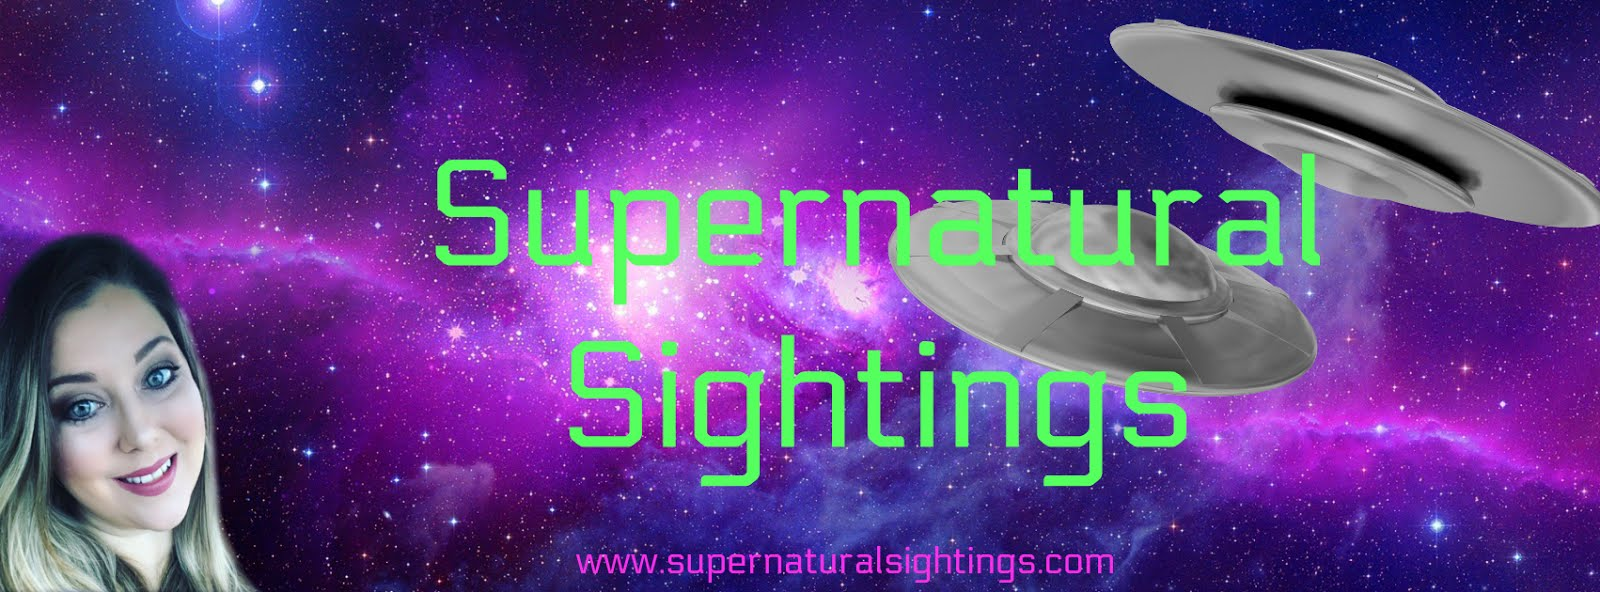 Supernatural Sightings